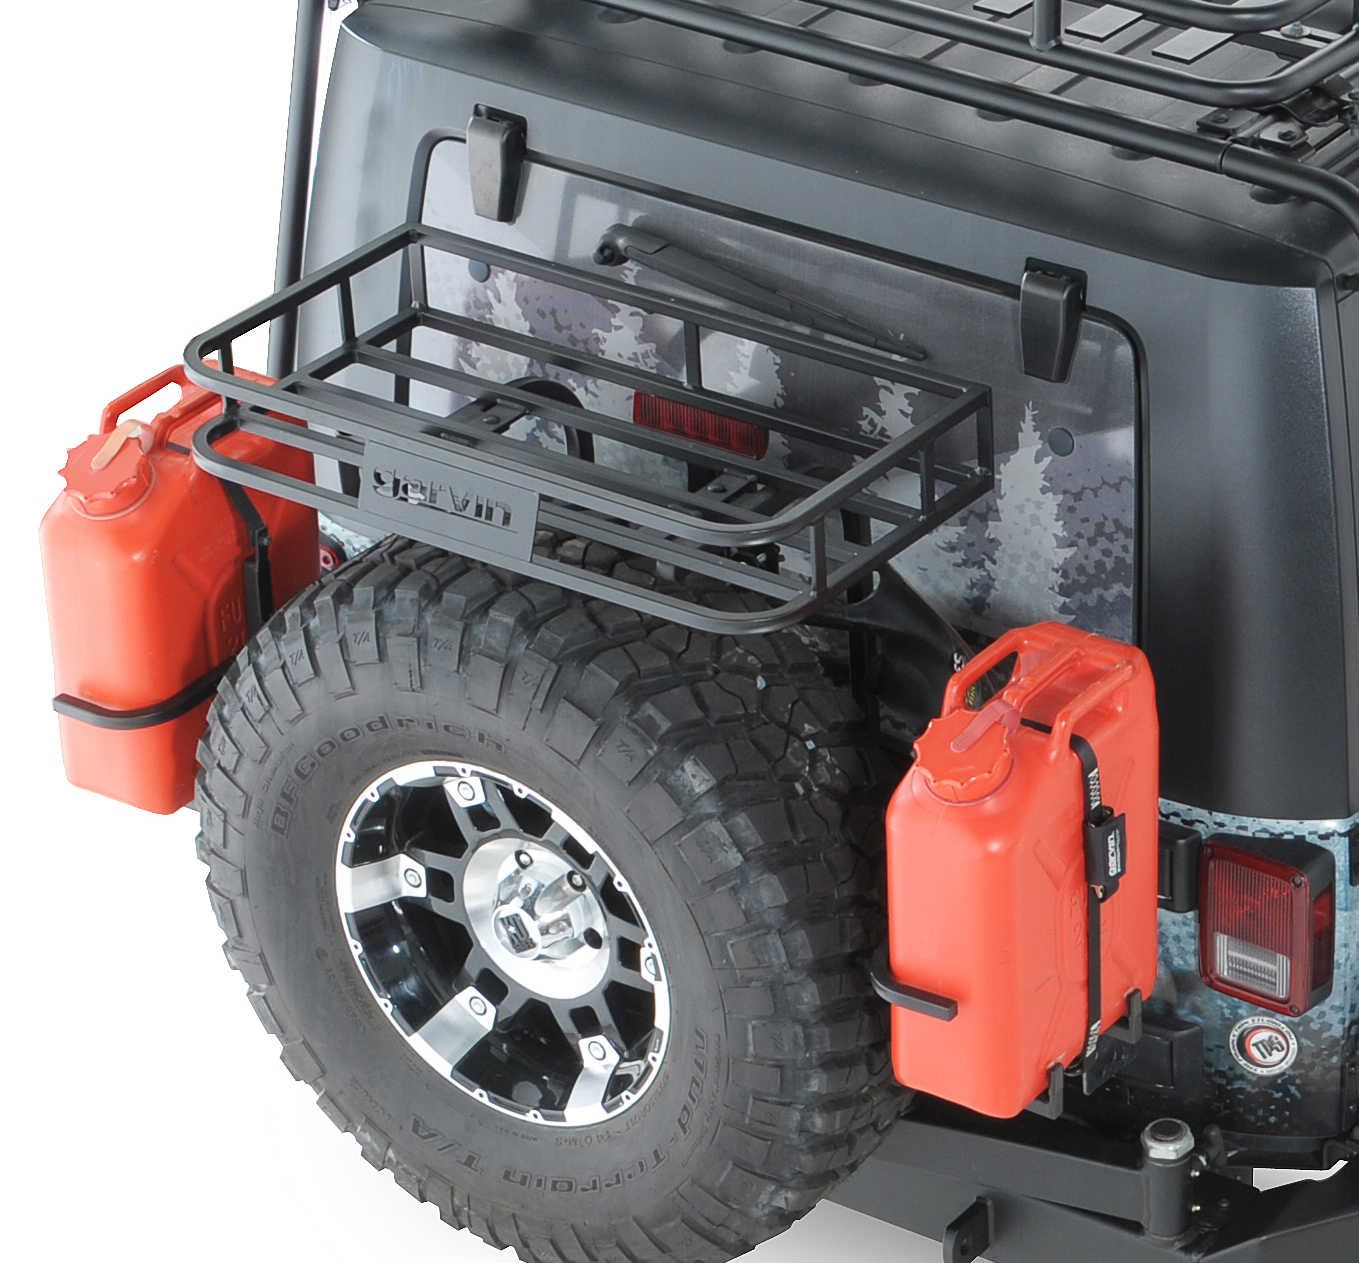 The New Garvin G2 Trail Rack Accessory Is Perfect For An Ice Chest